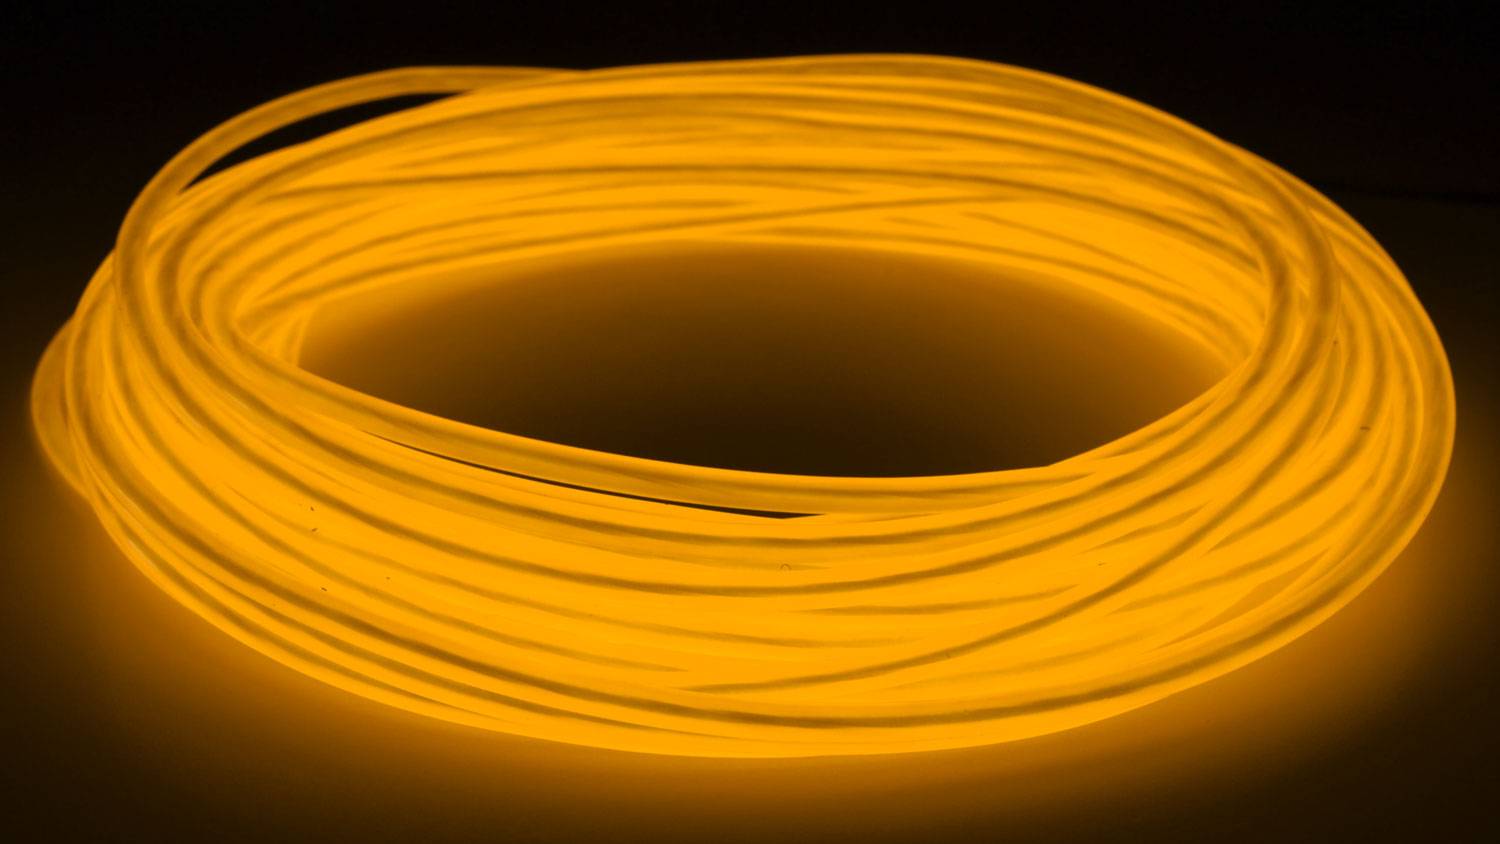 Details about GlowCity Portable Light Up 5mm 50ft El Wire Kit With Plug In  The Wall